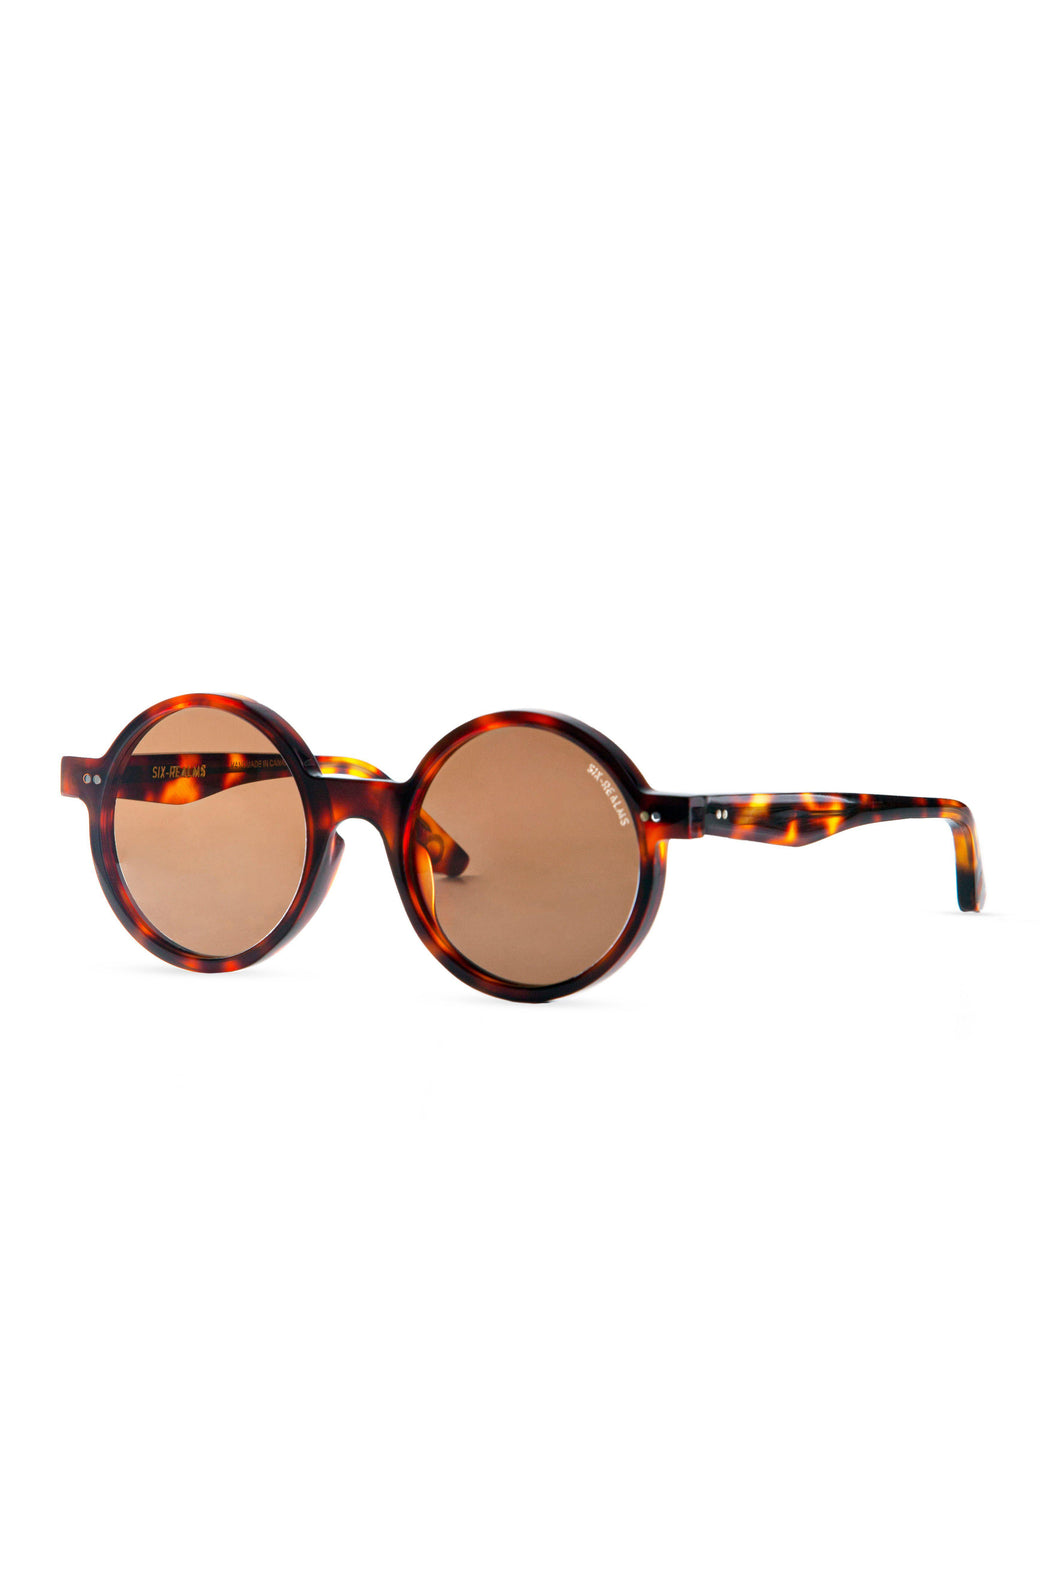 KARMA - Tortoise-sunglasses-SIX-REALMS